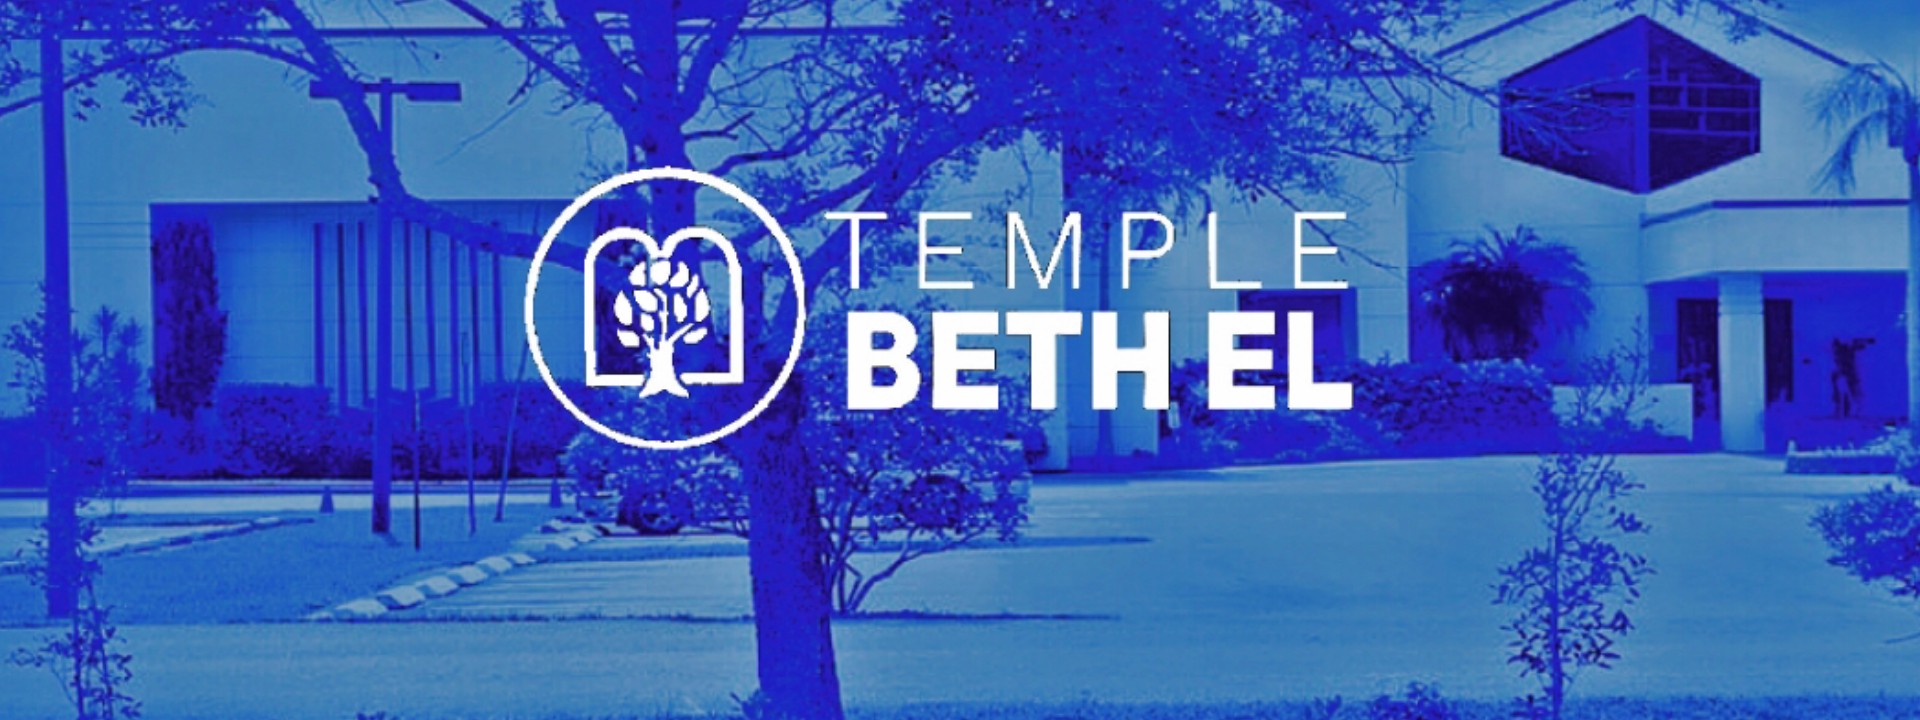 "<a href=""https://www.templebethel.com/about-us""